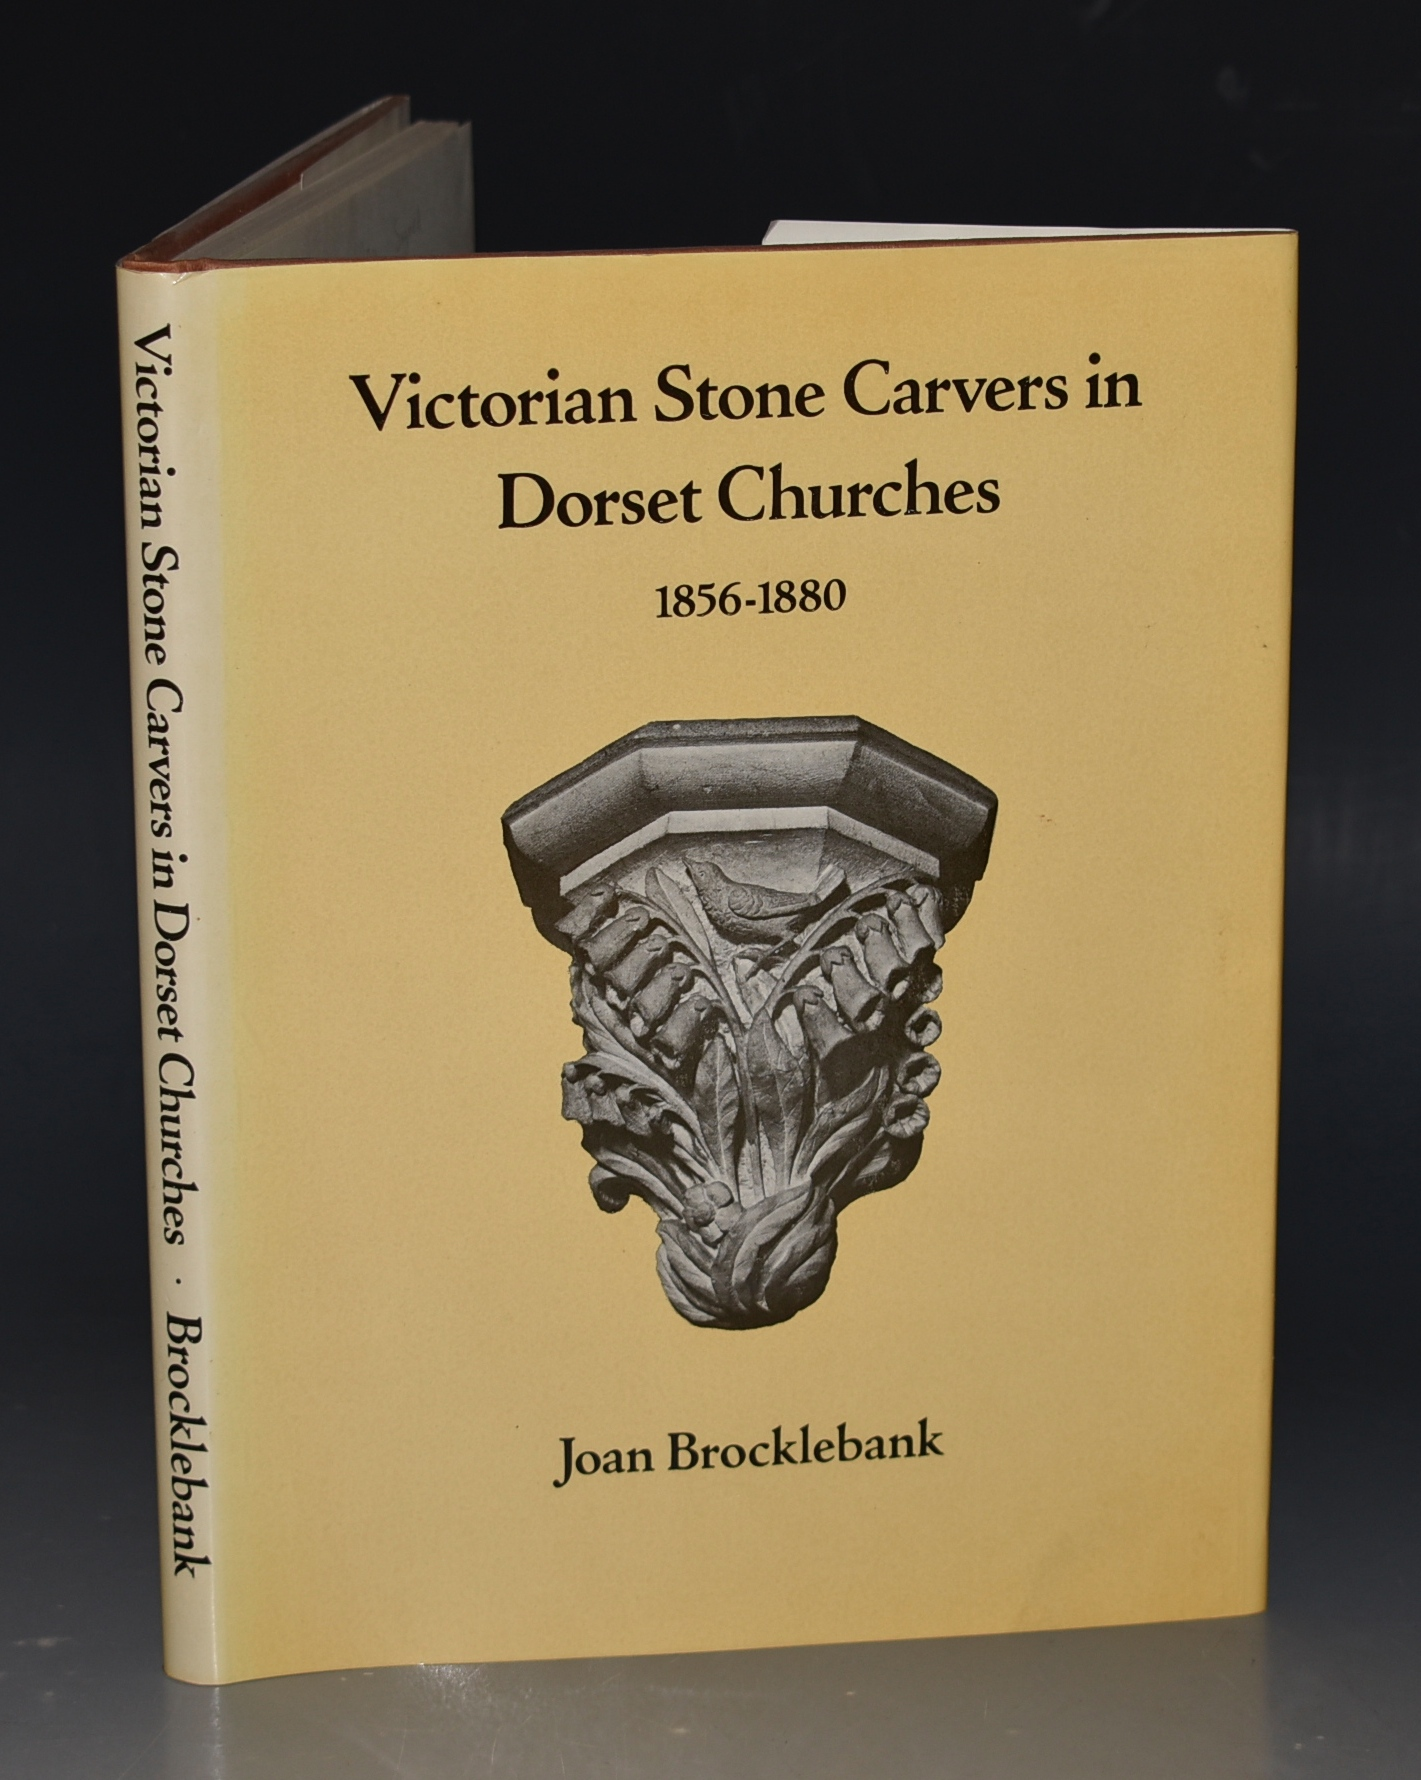 Image for Victorian Stone Carvers in Dorset Churches 1856-1880. with excerpts from the reports of the consecration ceremonies in the Dorset County Chronicles and other sources. Signed by Author